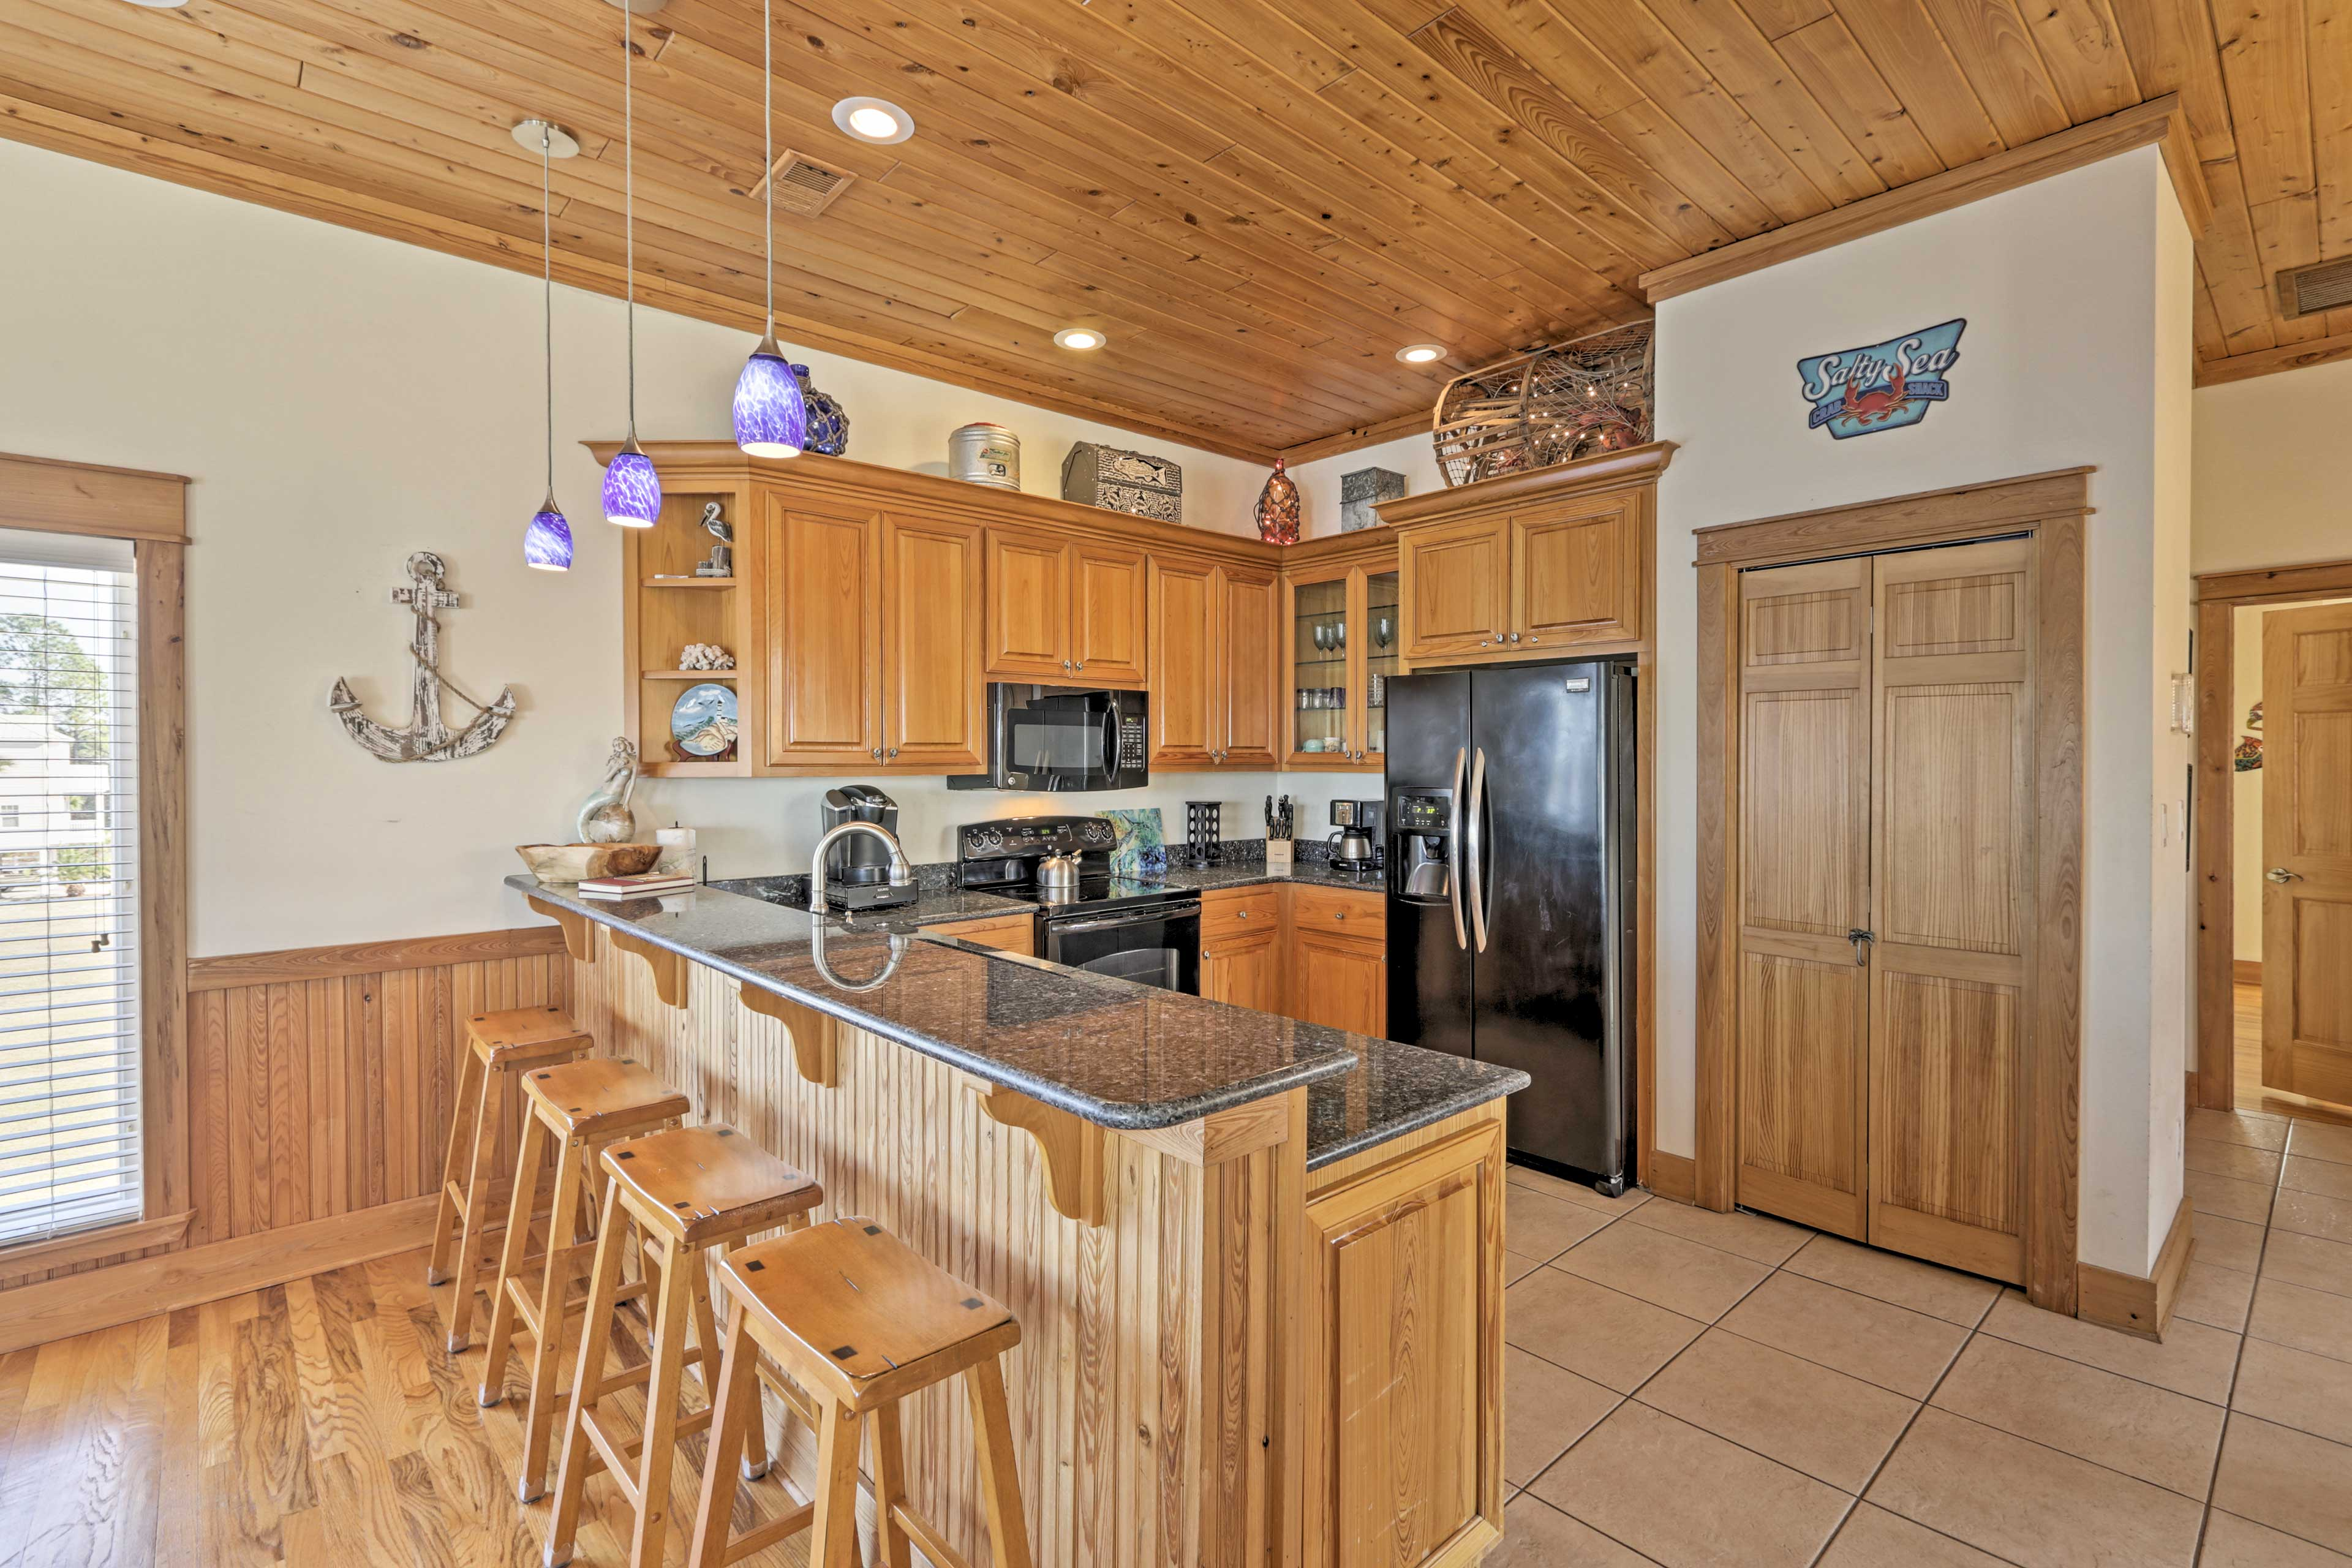 Entertain guests at the bar counter set for 4.